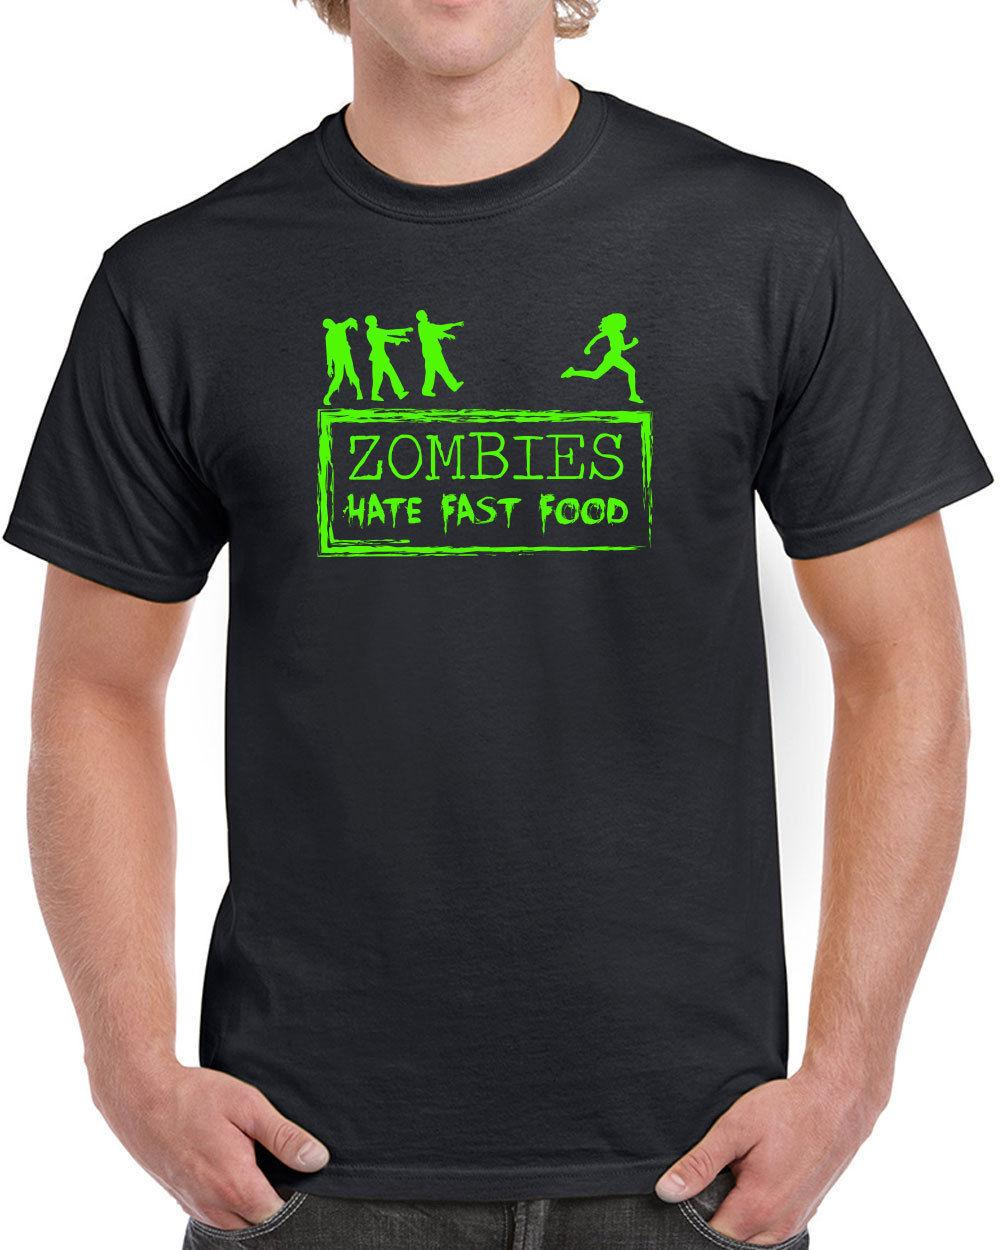 9116c39f8 598 Zombies Hate Fast Food Mens T Shirt Funny Scary Walking Tv Show Dead  Scary Great Tee Shirt Designs Funny Screen Tees From Amesion, $11.45|  DHgate.Com